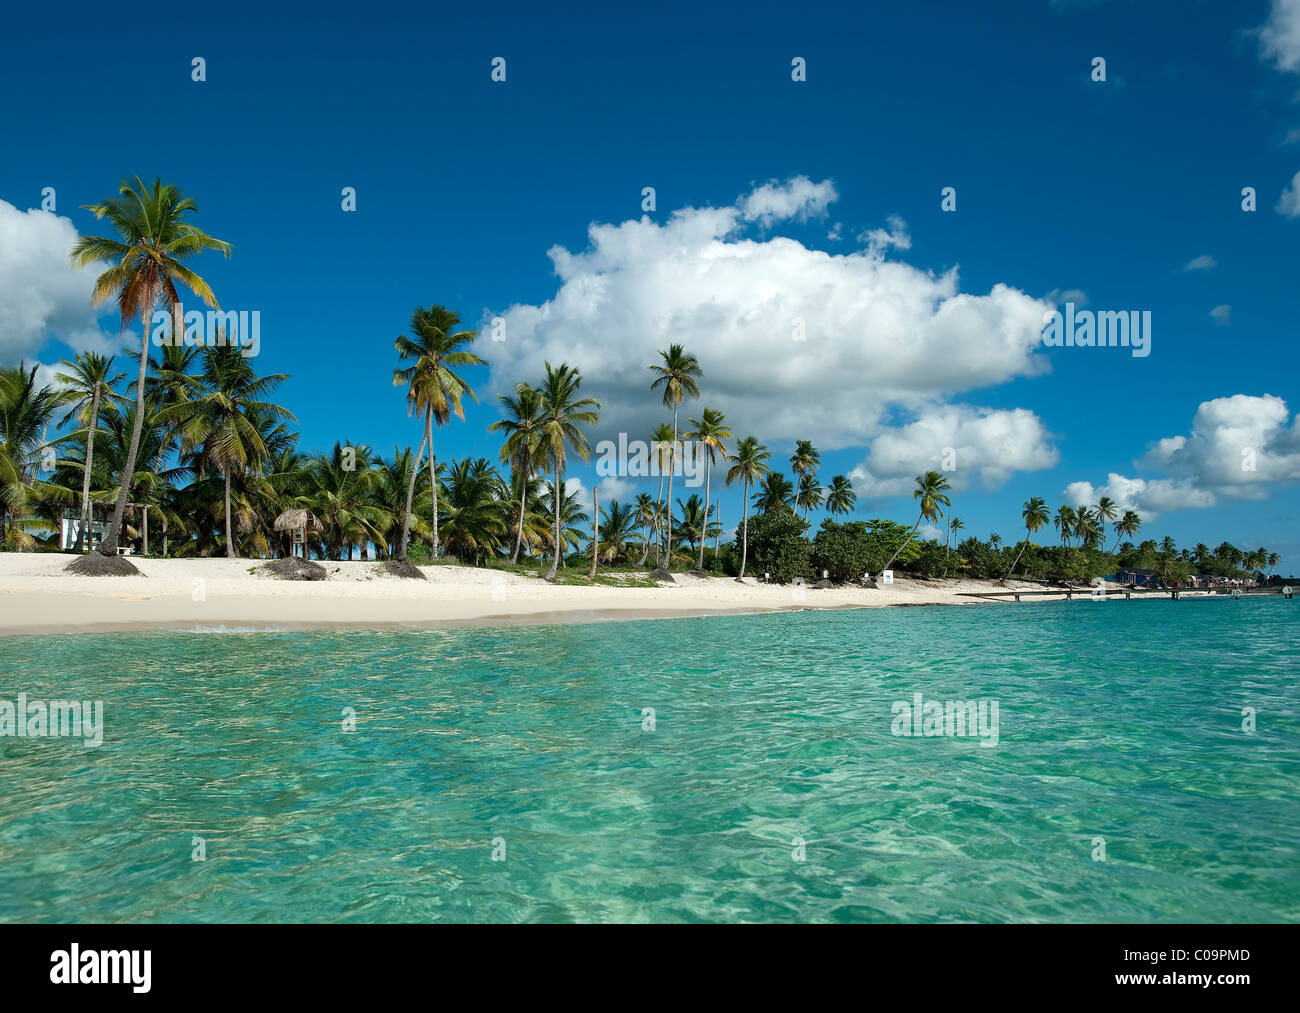 Bayahibe Beach, Dominican Republic - Stock Image